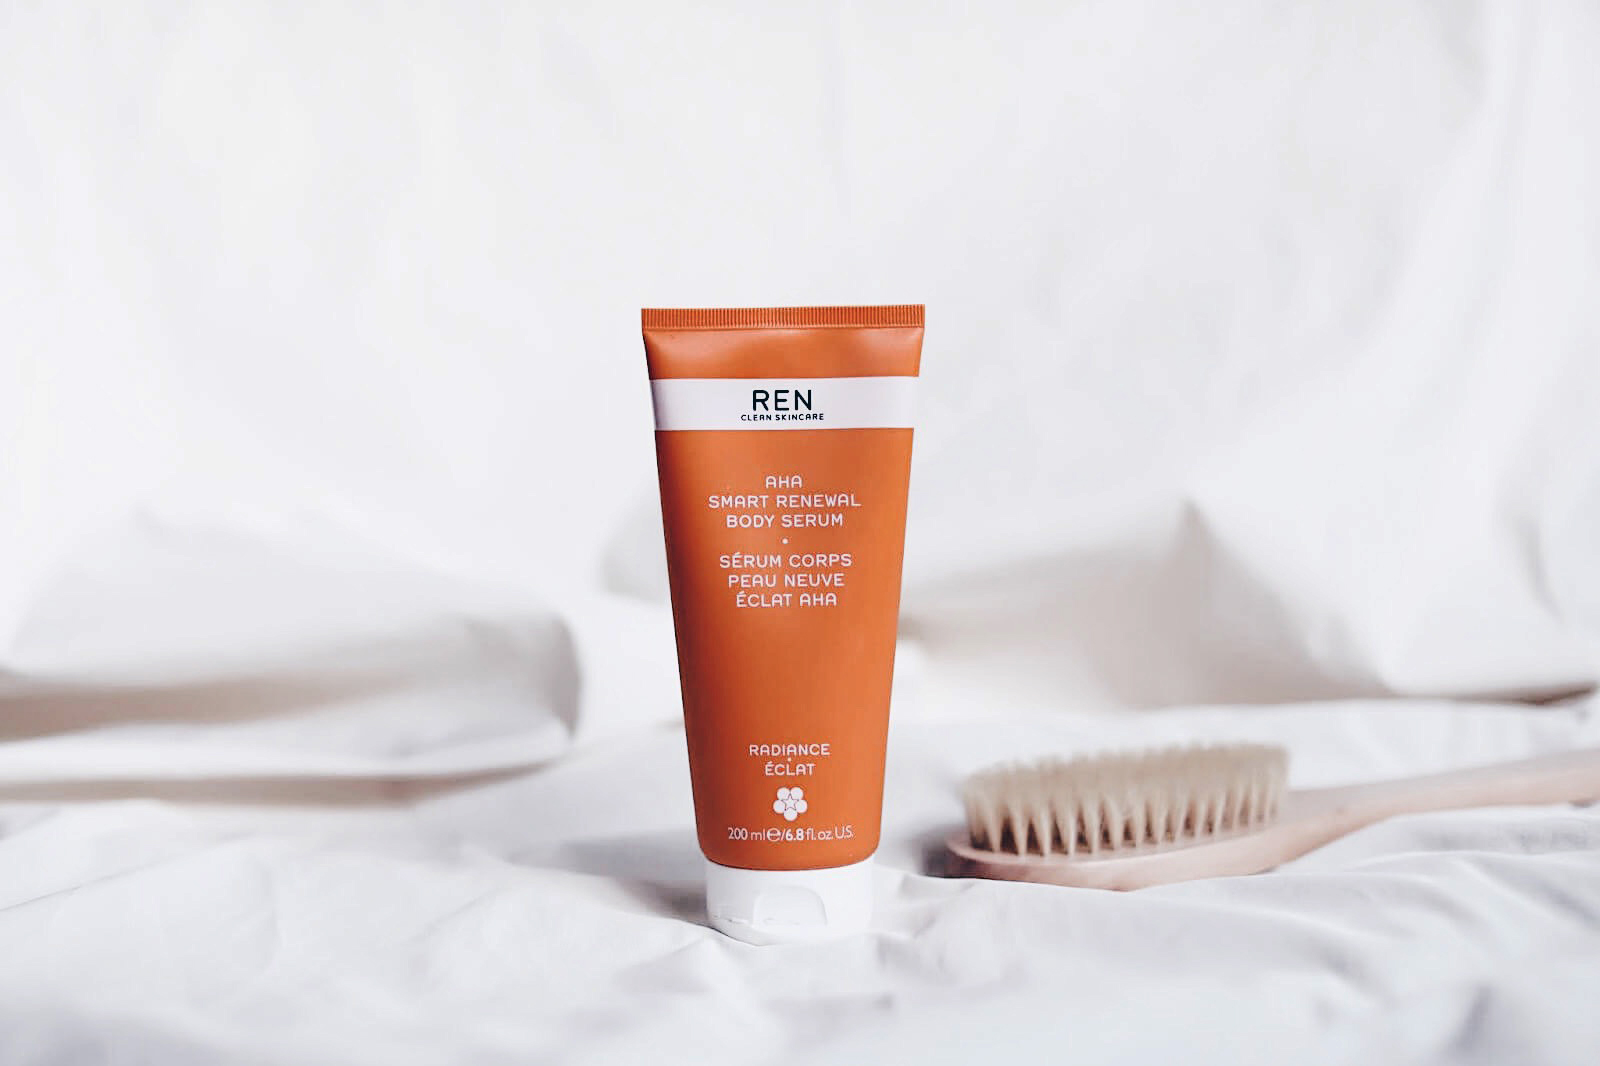 ren-aha-body-renewal-serum-soin-corps-exfoliant-avis-test